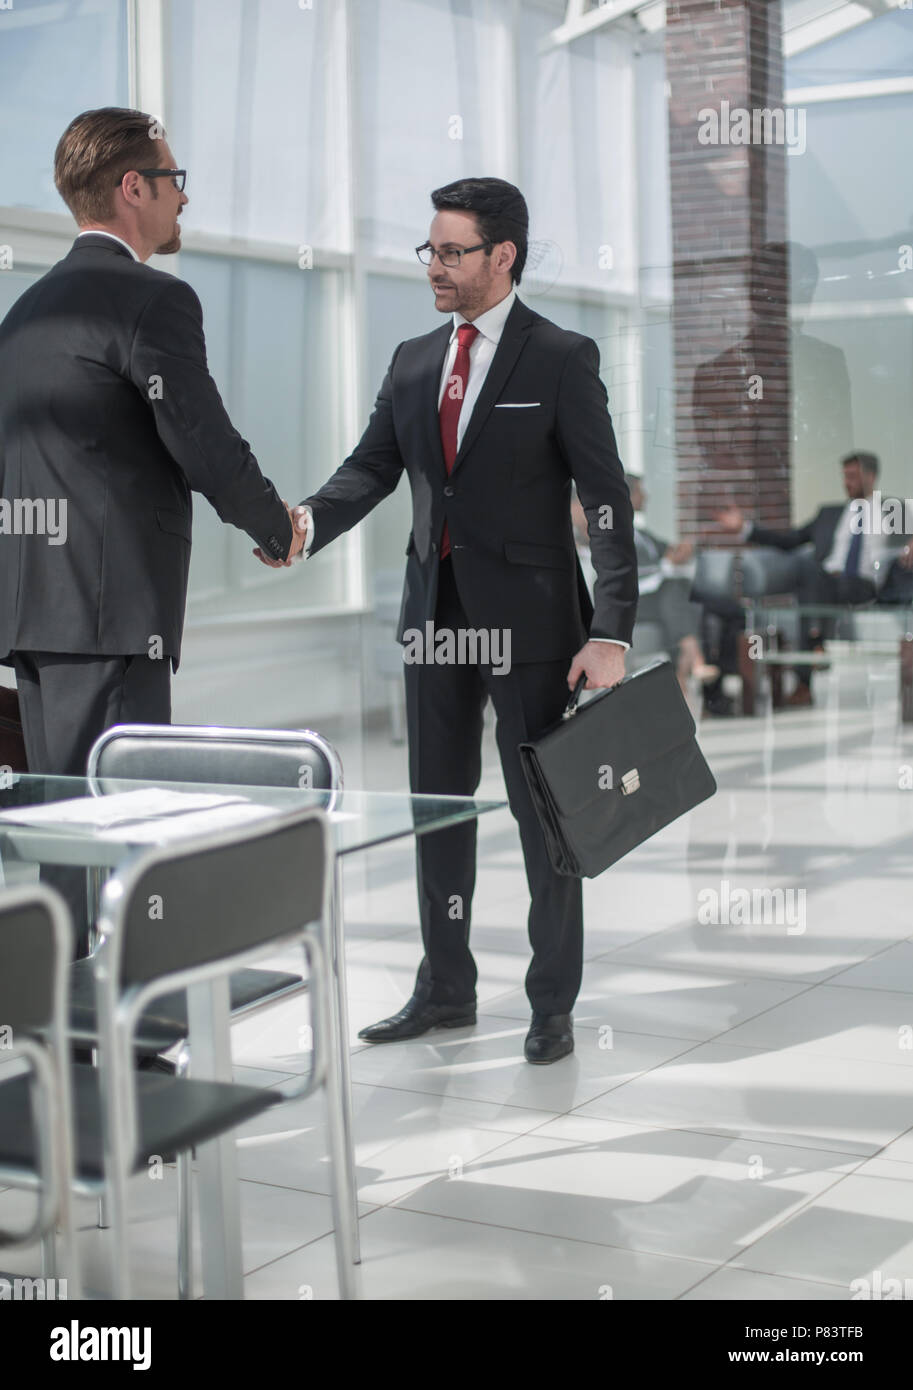 handshake business people in the Bank office - Stock Image